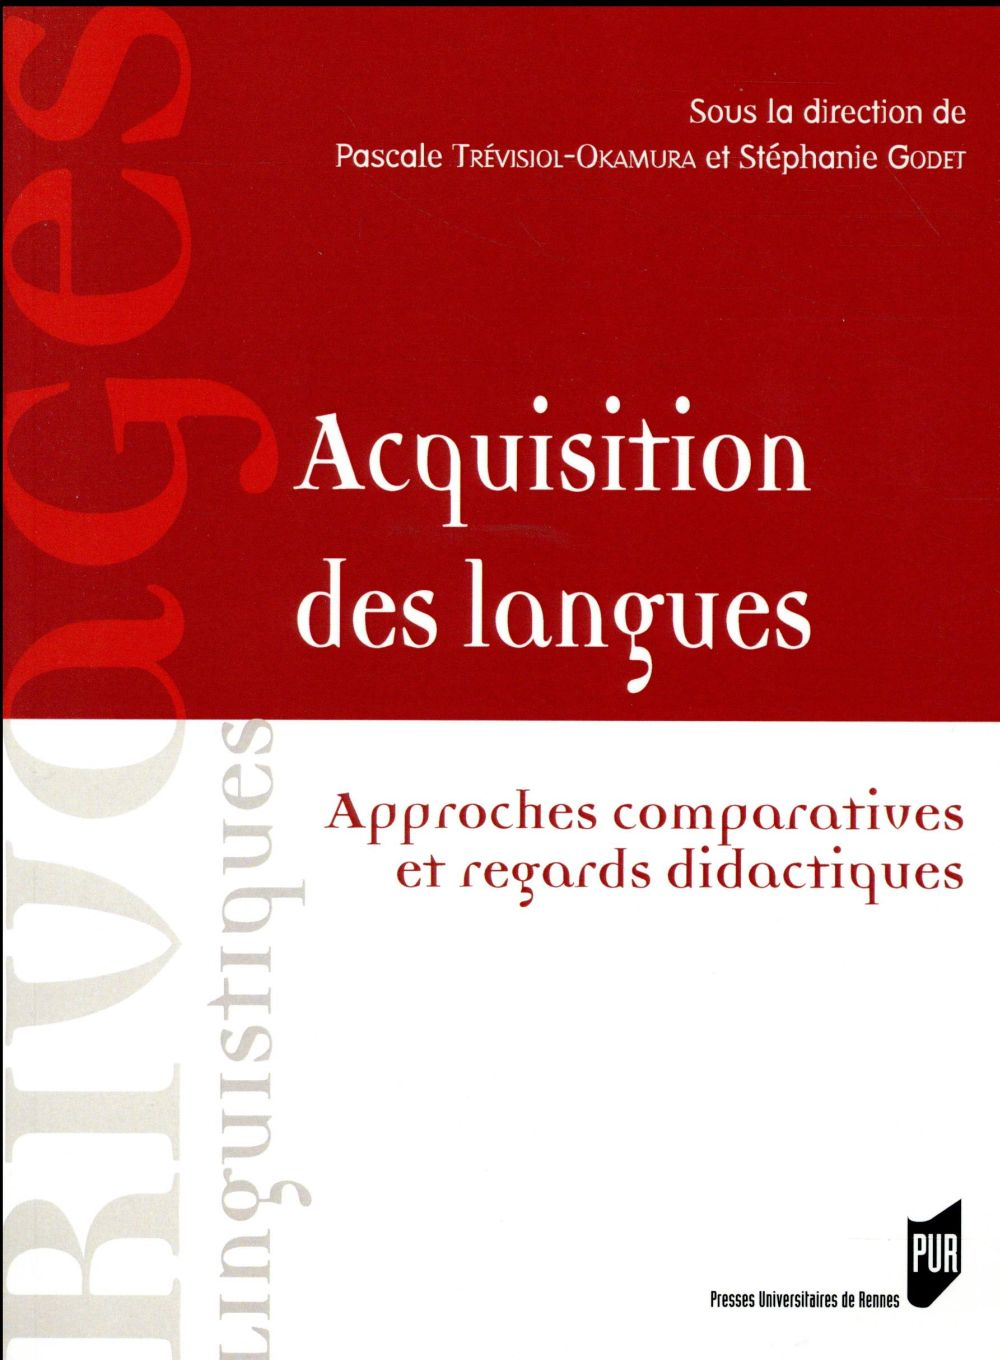 ACQUISITIONS DES LANGUES - APPROCHES COMPARATIVES ET REGARDS DIDACTIQUES